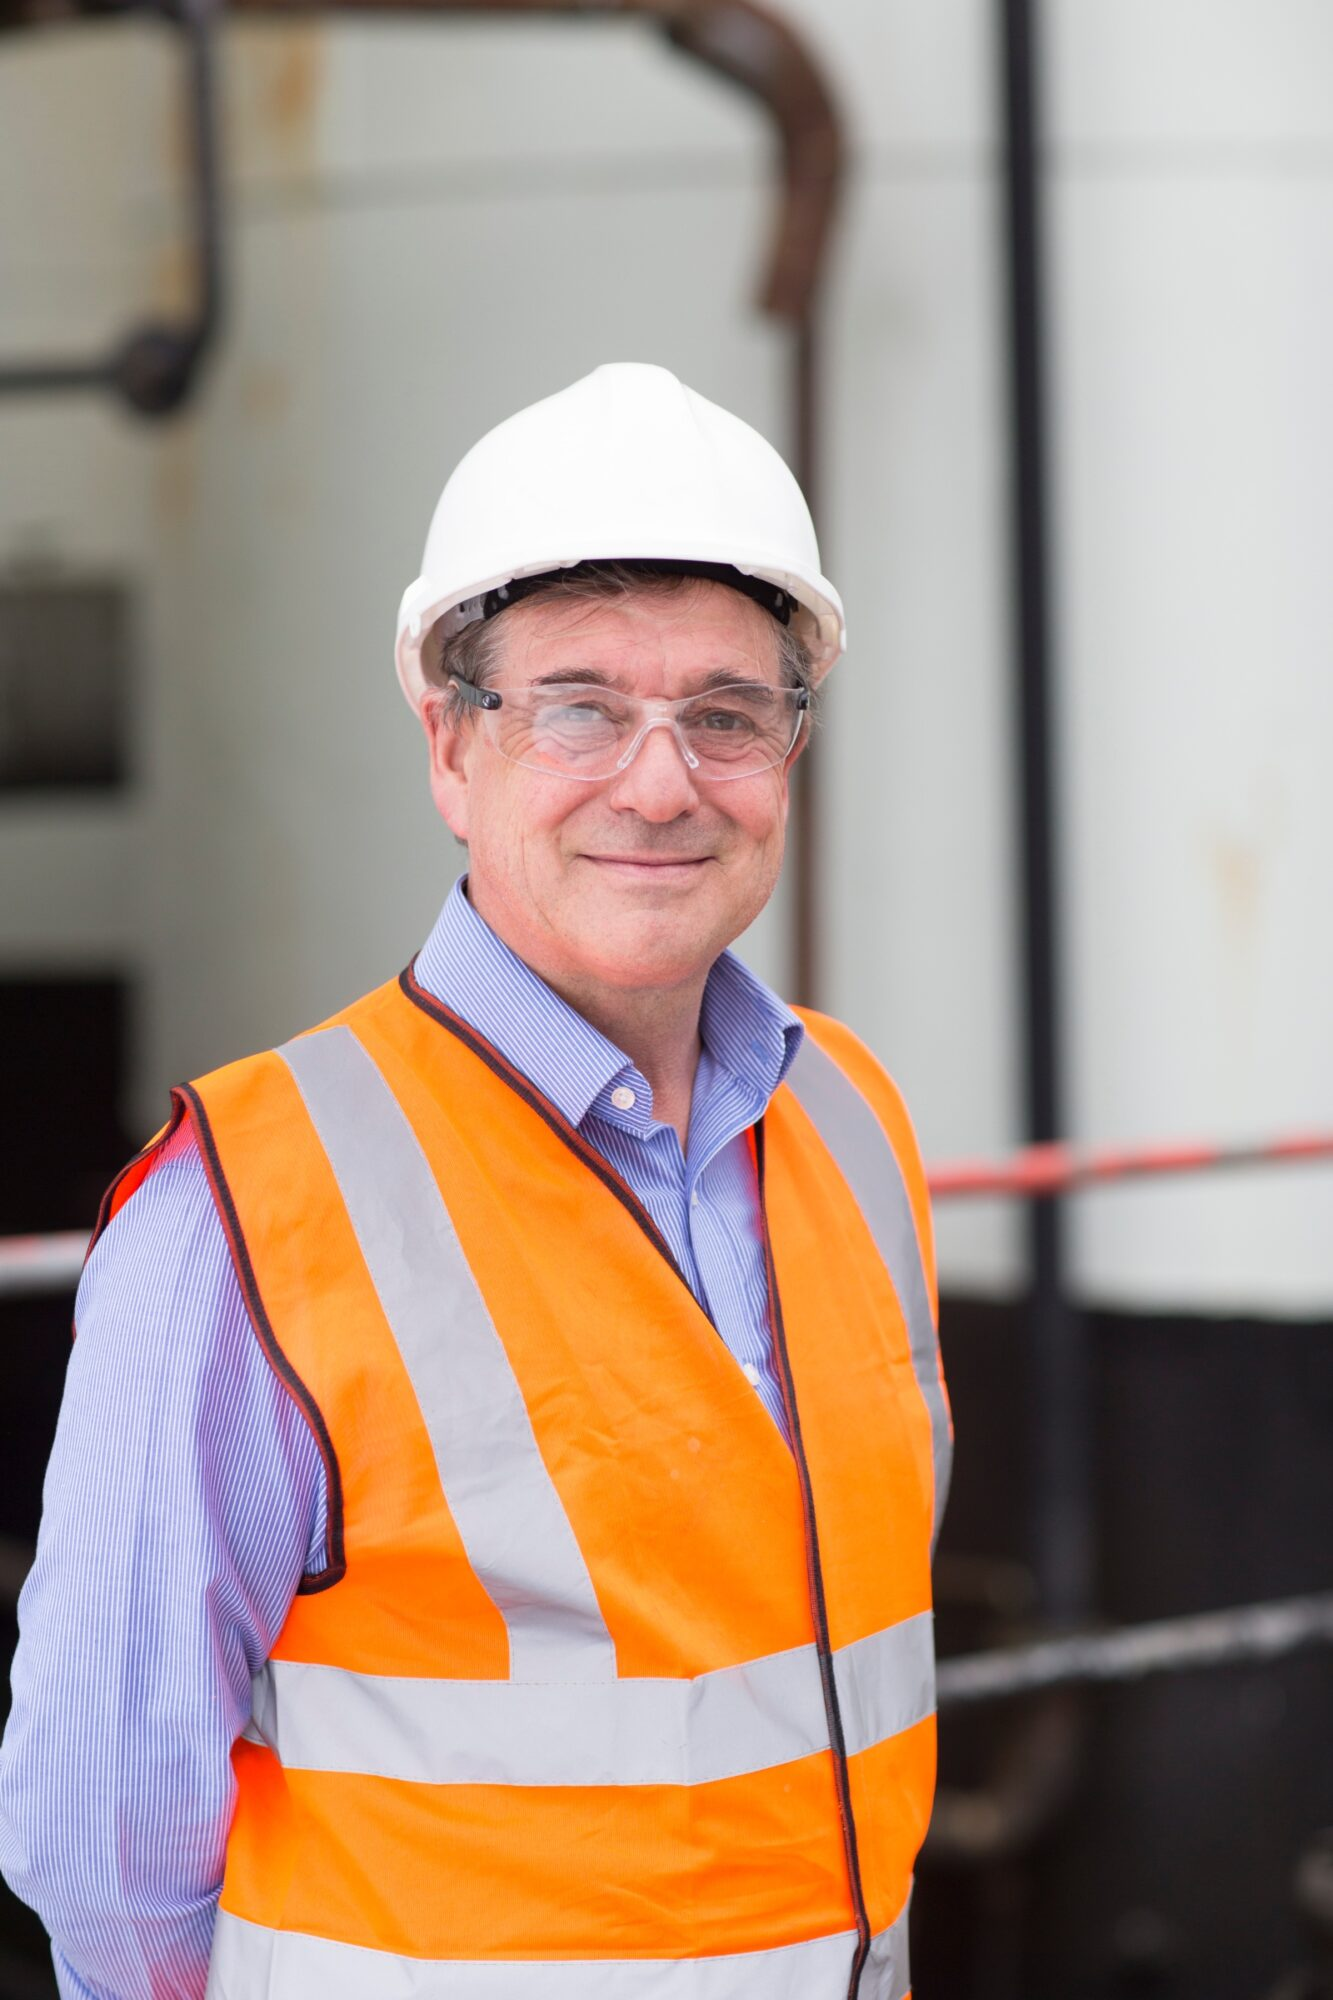 Managing Director Neil Richards with full PPE